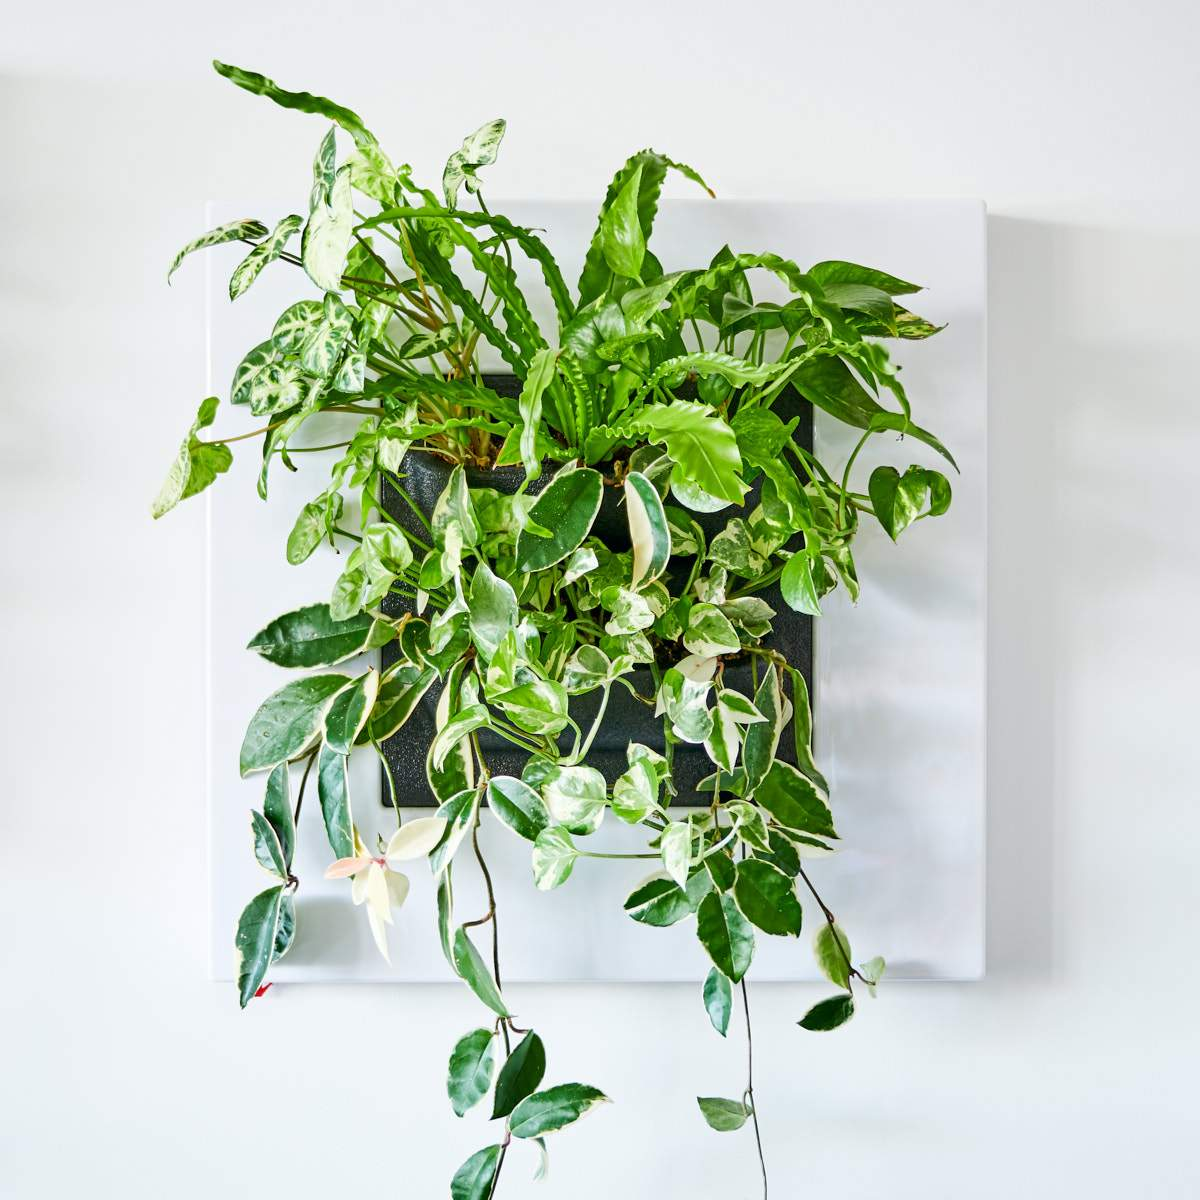 LIVE FRAME WITH PLANTS